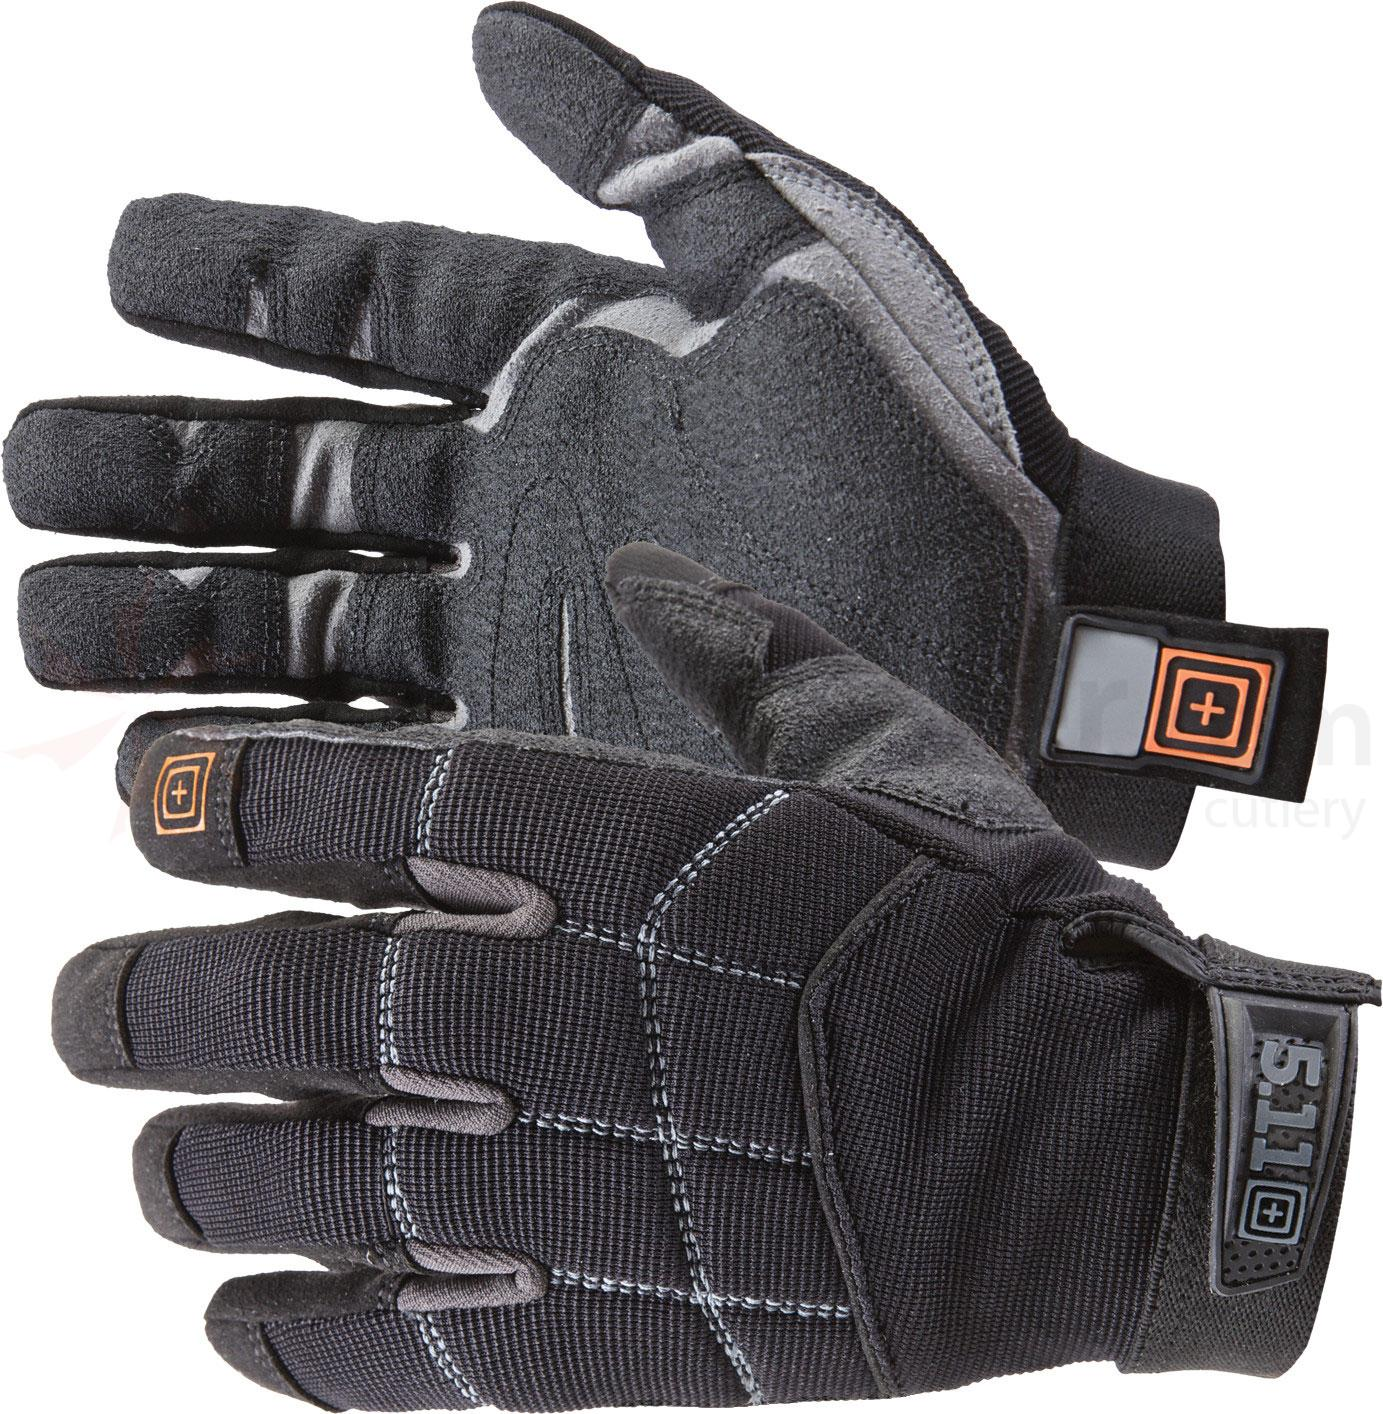 5.11 Tactical Station Grip Multi-Task Gloves, Black, Medium (59351)